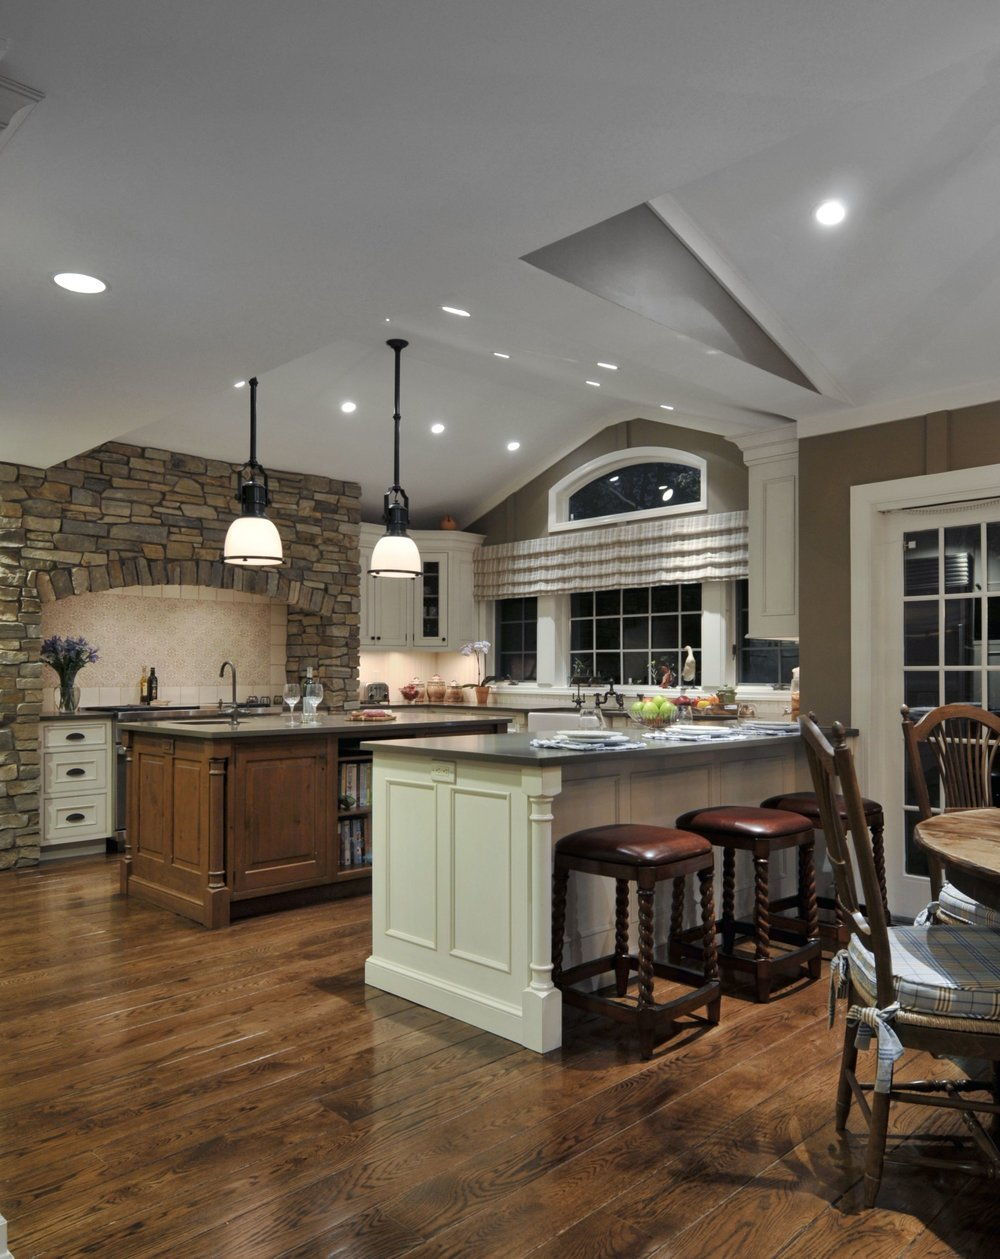 Traditional style kitchen with spacious hardwood floor